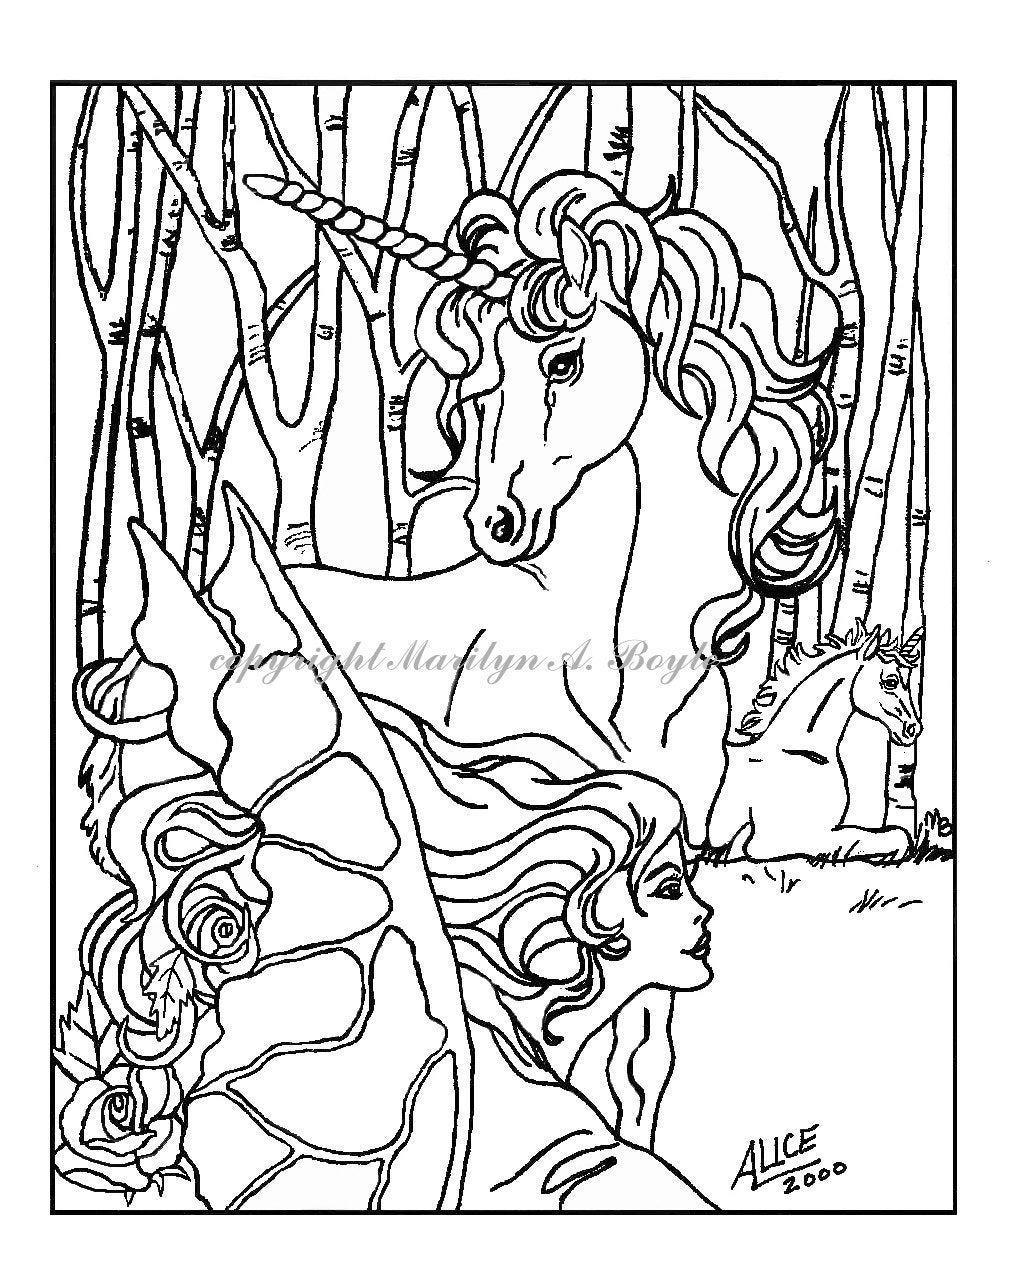 Watercolor paper coloring book - Coloring Book Five Pages On 140 Lb Watercolor Paper Fantasy Pegasus Unicorns Maiden Fairy Horse Fairy Flowers Original Art